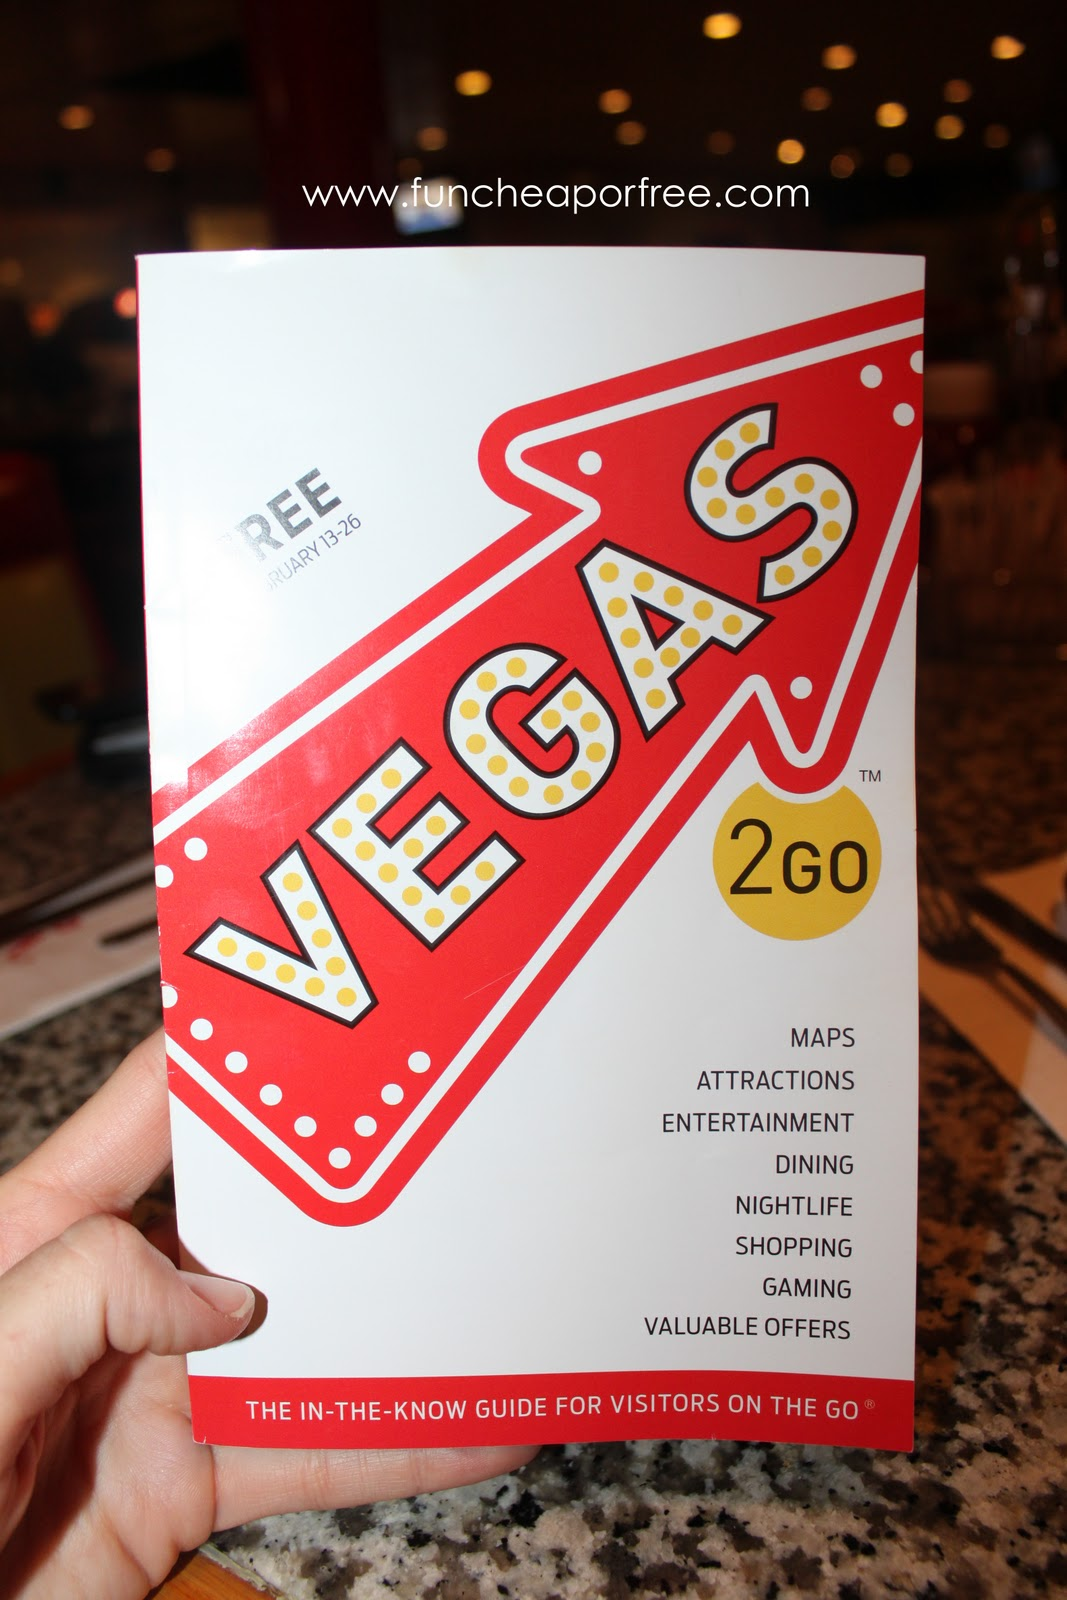 How to save money in las vegas using coupons